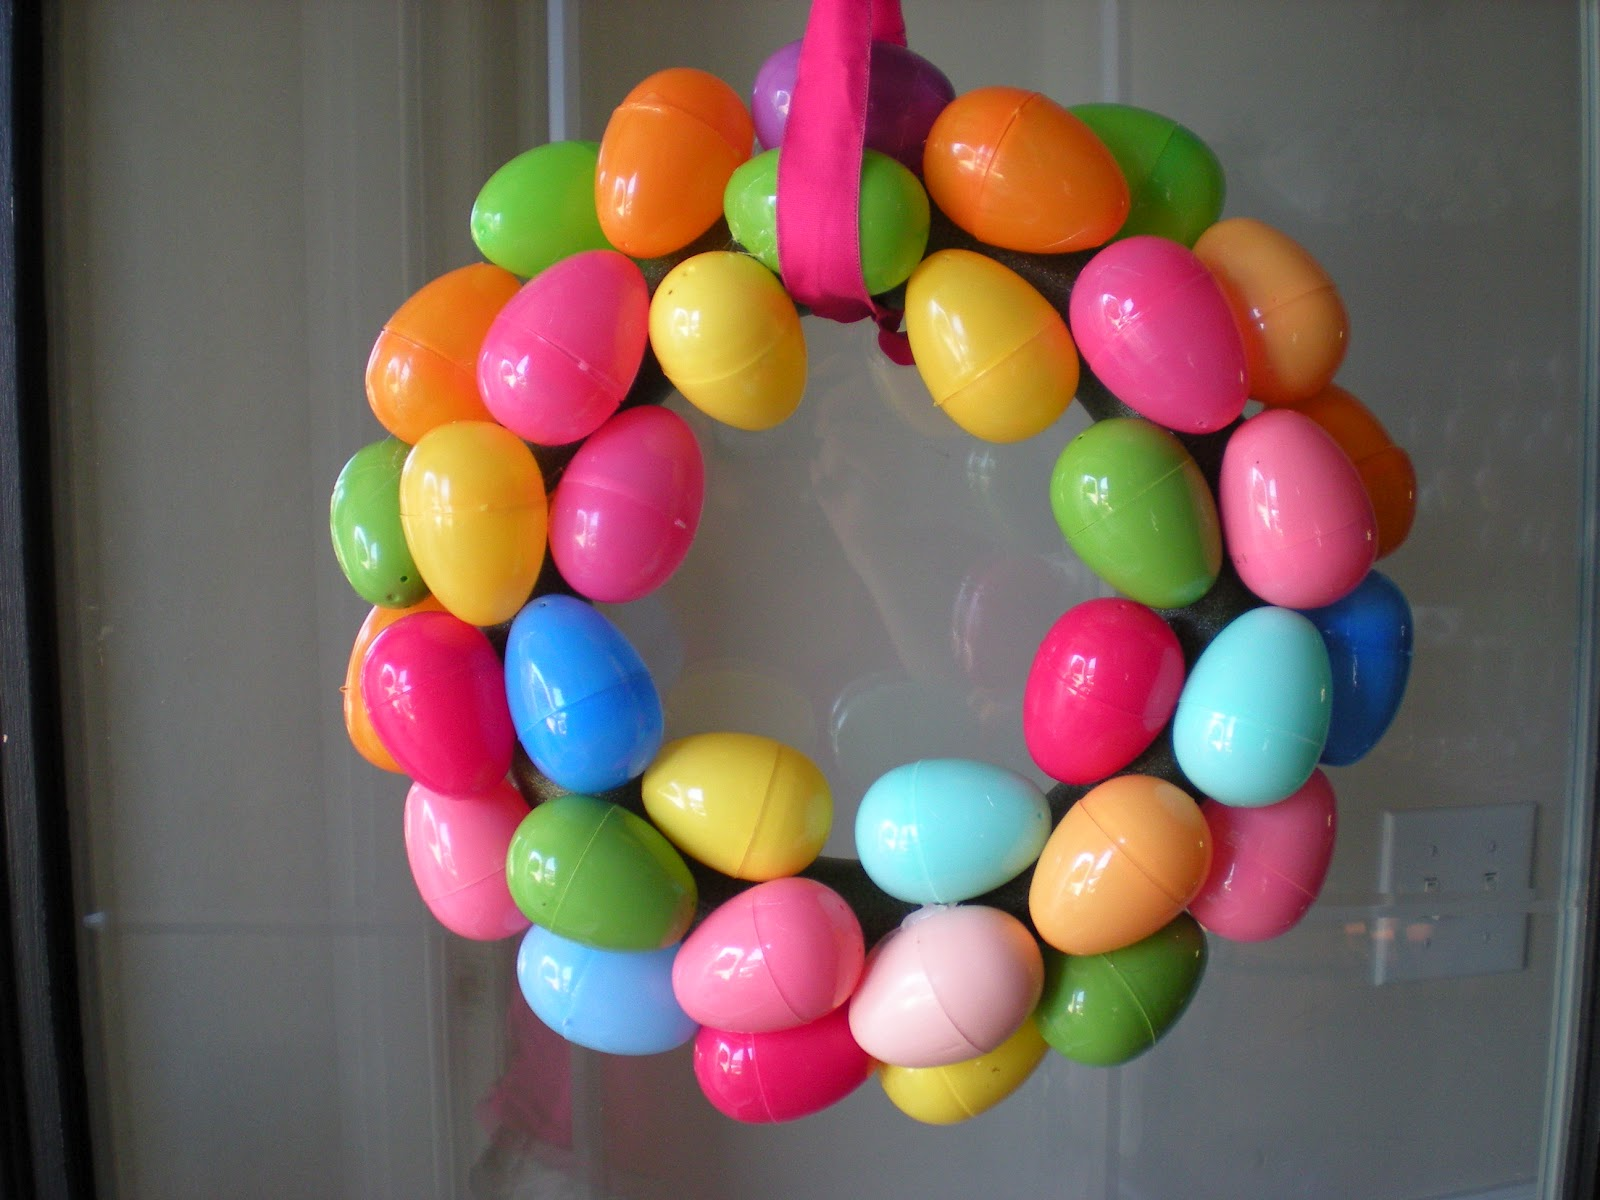 ... that's how I would describe this cute and simple Easter egg wreath